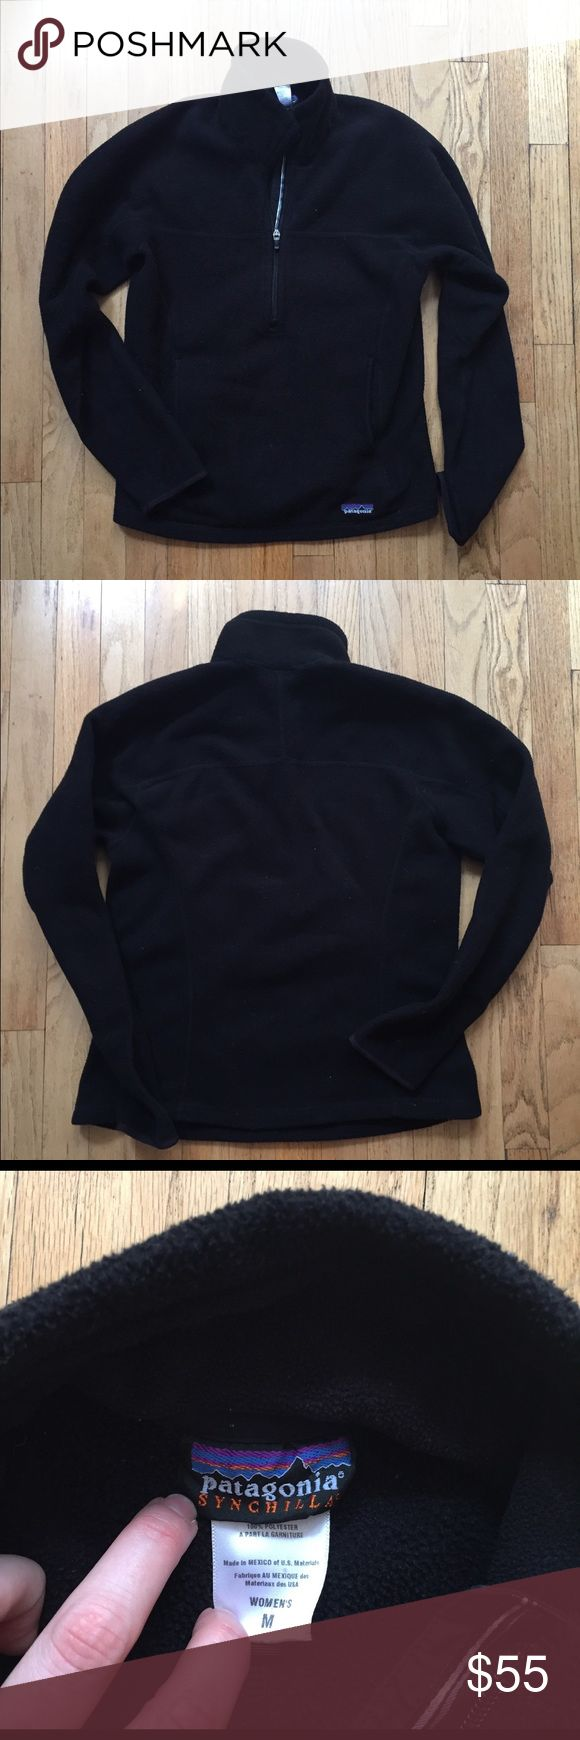 PRICE DROP Patagonia black 3/4 zip fleece SALE Good condition - Black Patagonia Synchillas fleece with 3/4 zip and kangaroo pocket - women size medium. Perfect for wearing alone in the fall or layering in the winter! NO TRADES Patagonia Jackets & Coats